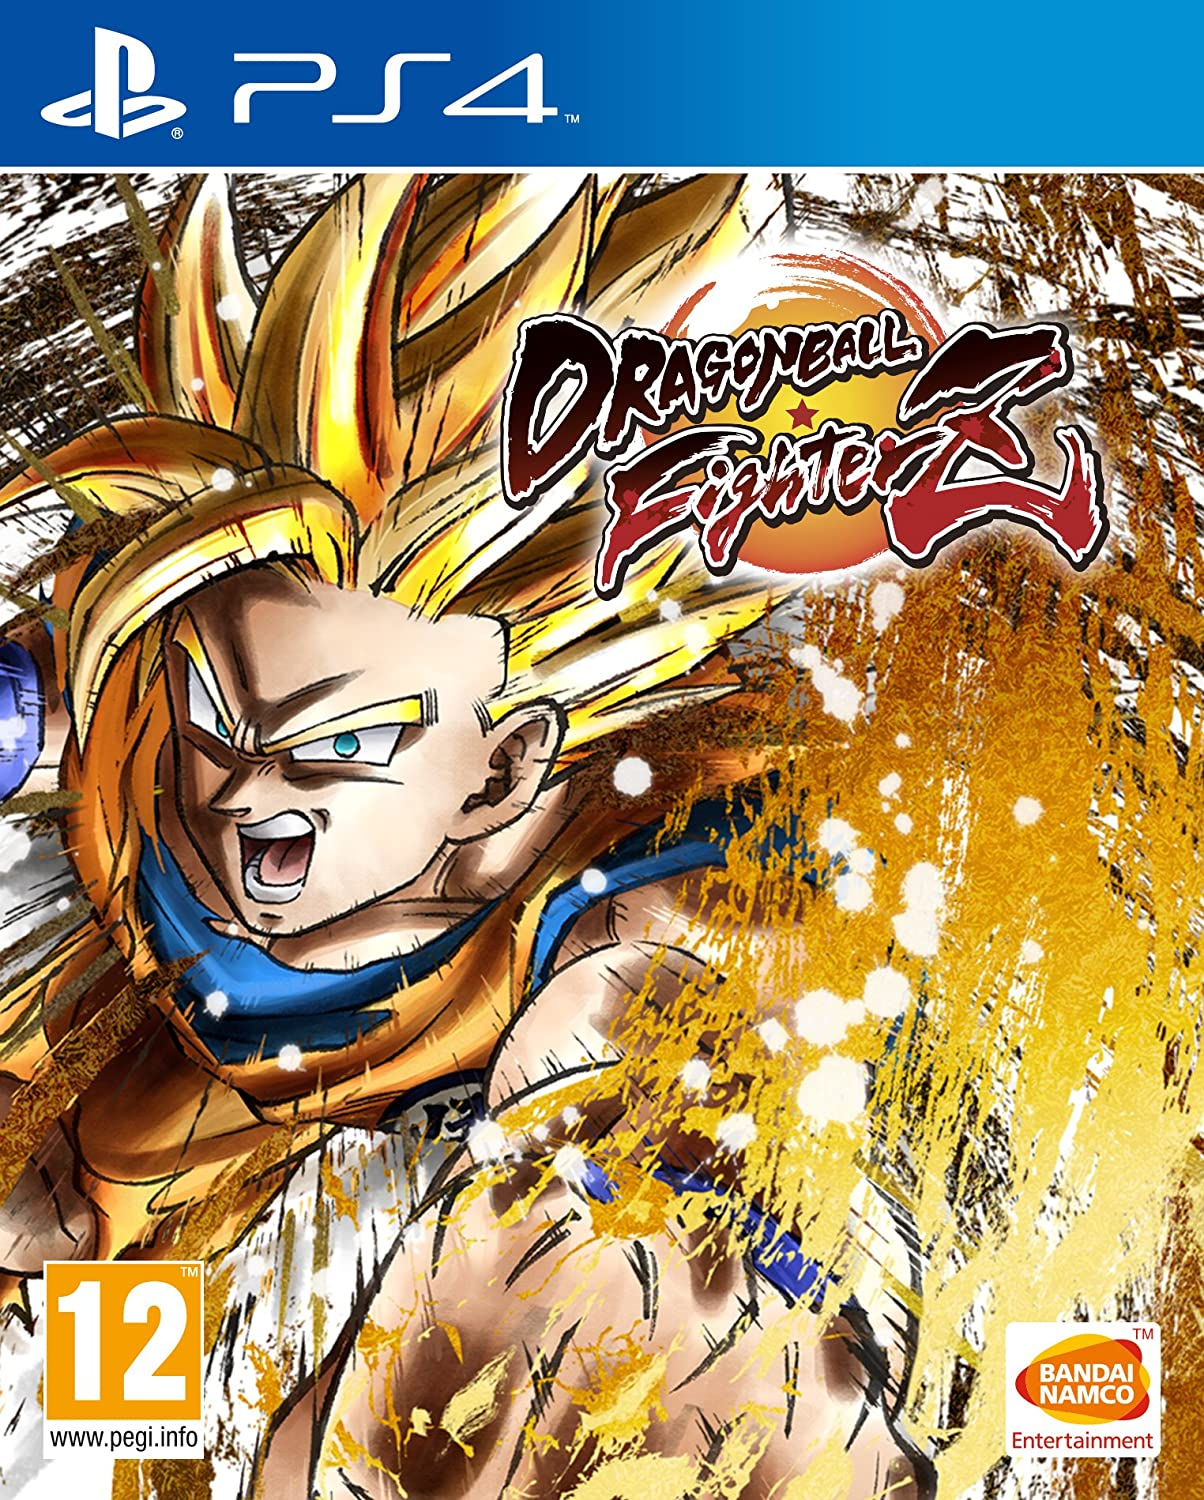 Dragon Ball Attention Choice brand FighterZ PS4